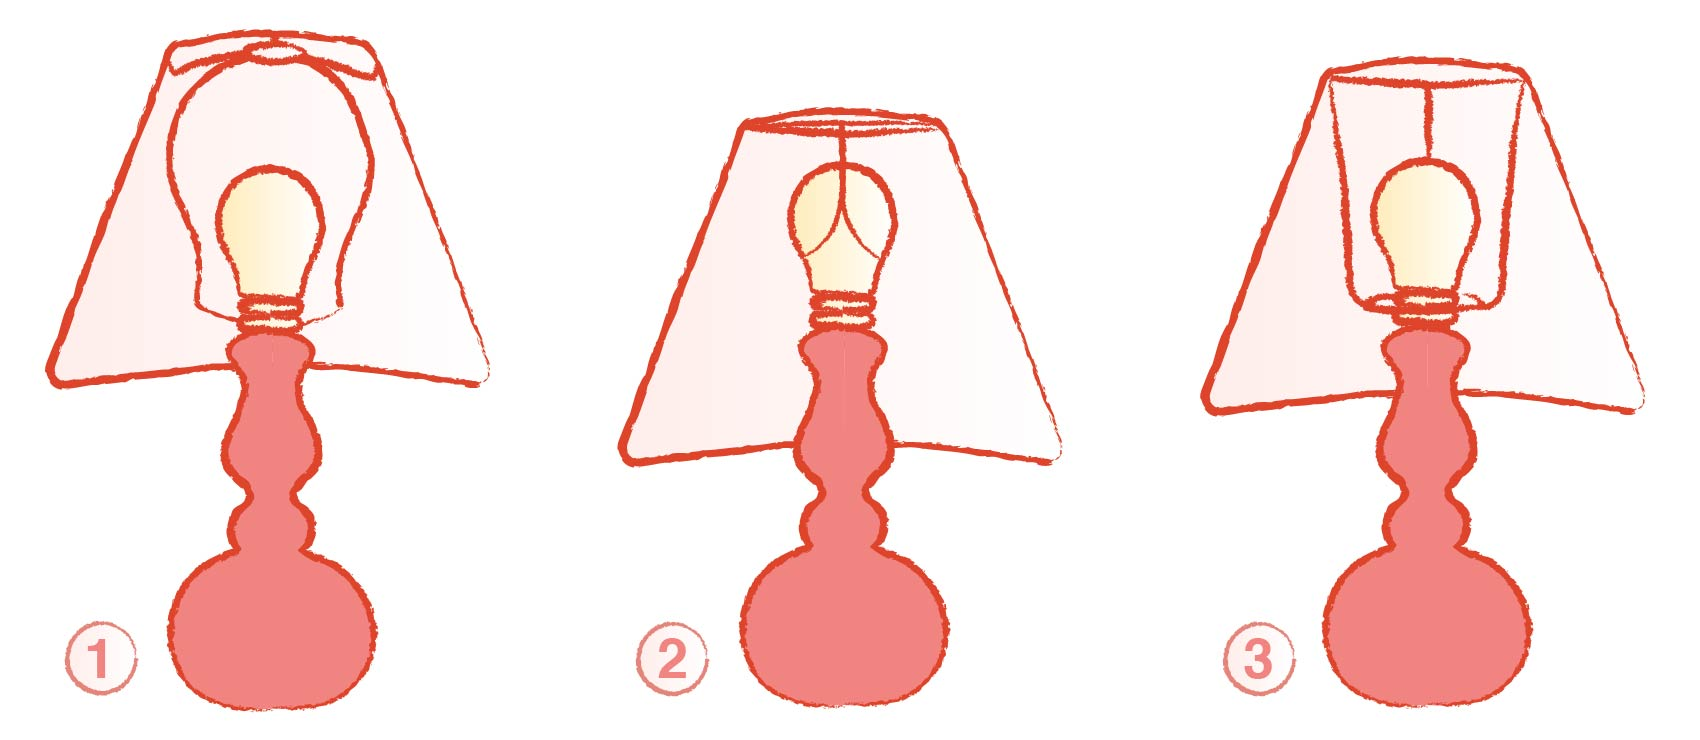 infographic of three lampshades